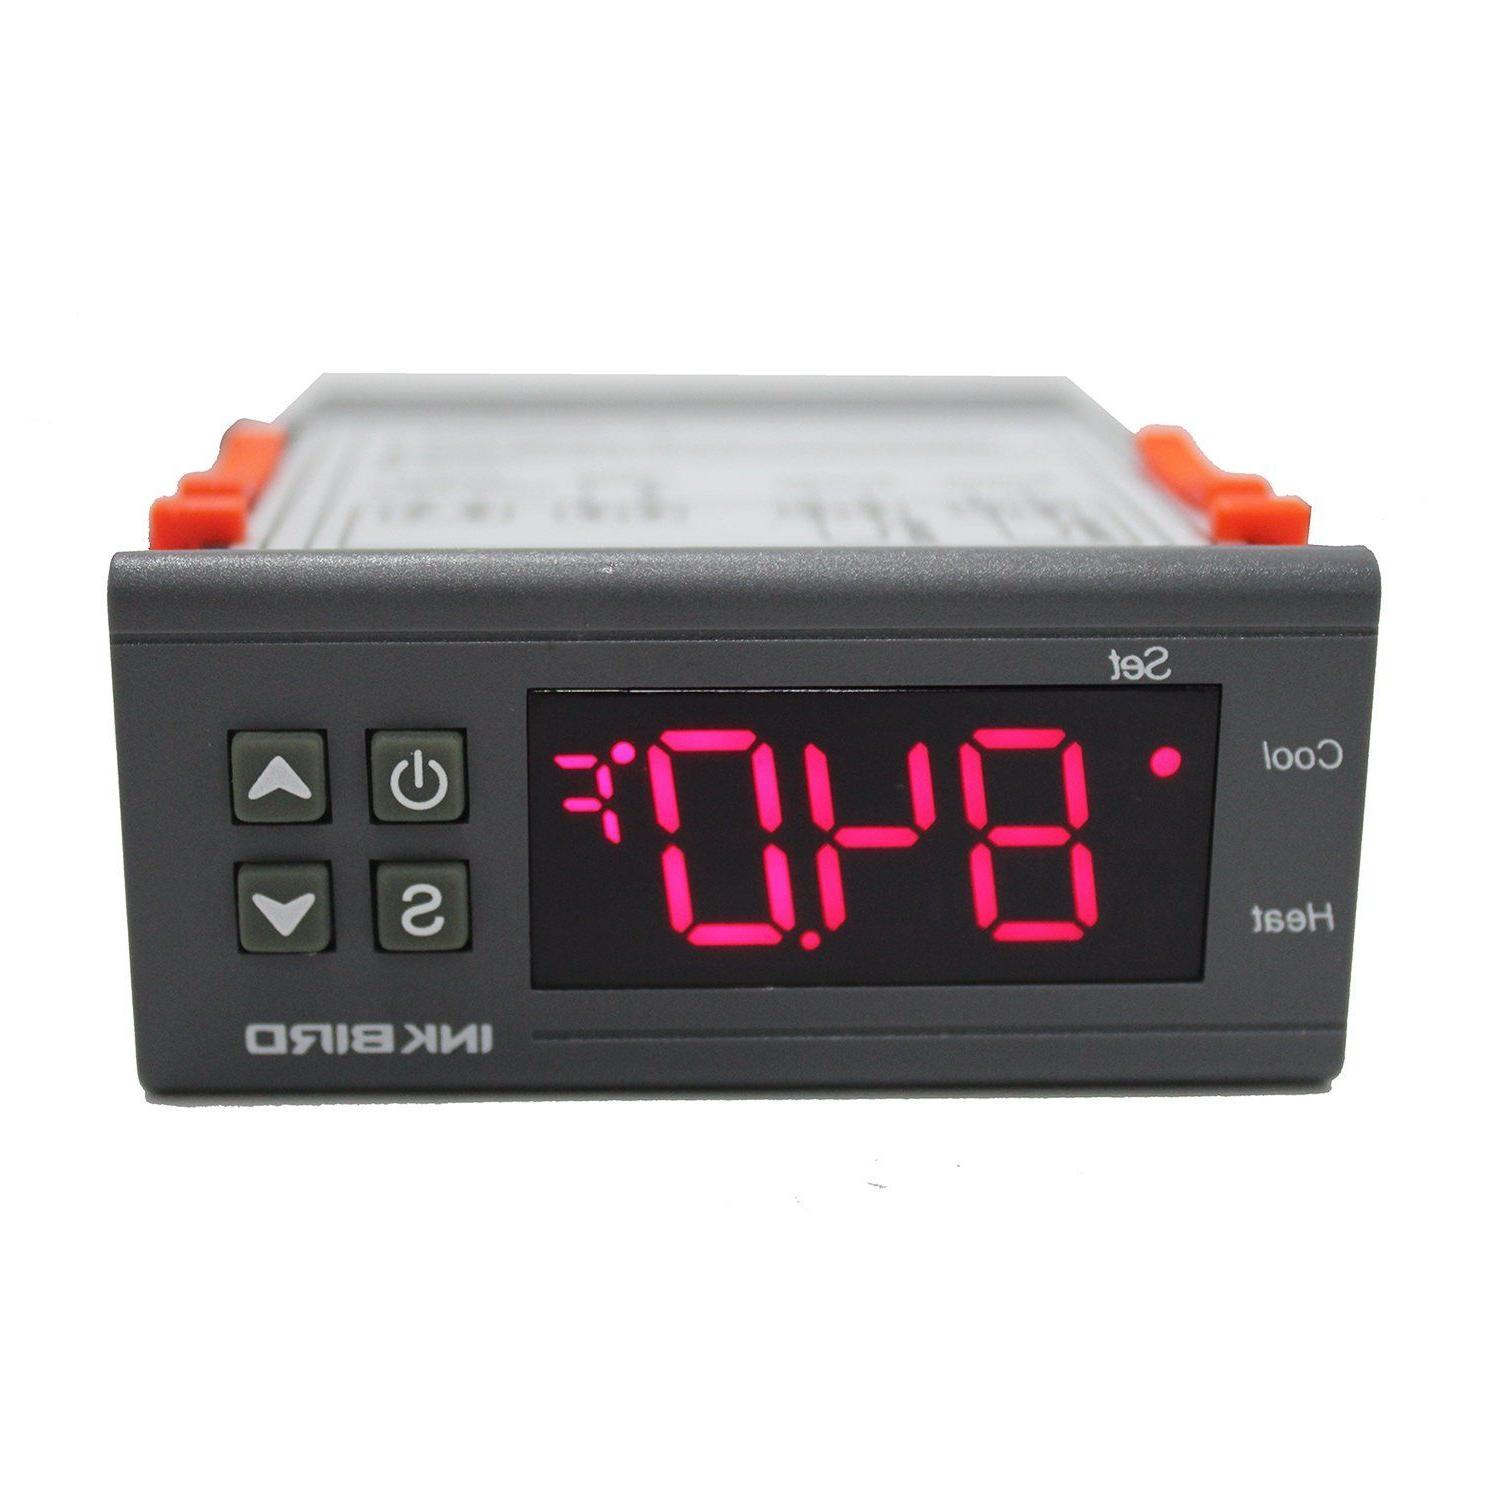 Inkbird All-purposed Digital Temperature Controller ITC1000